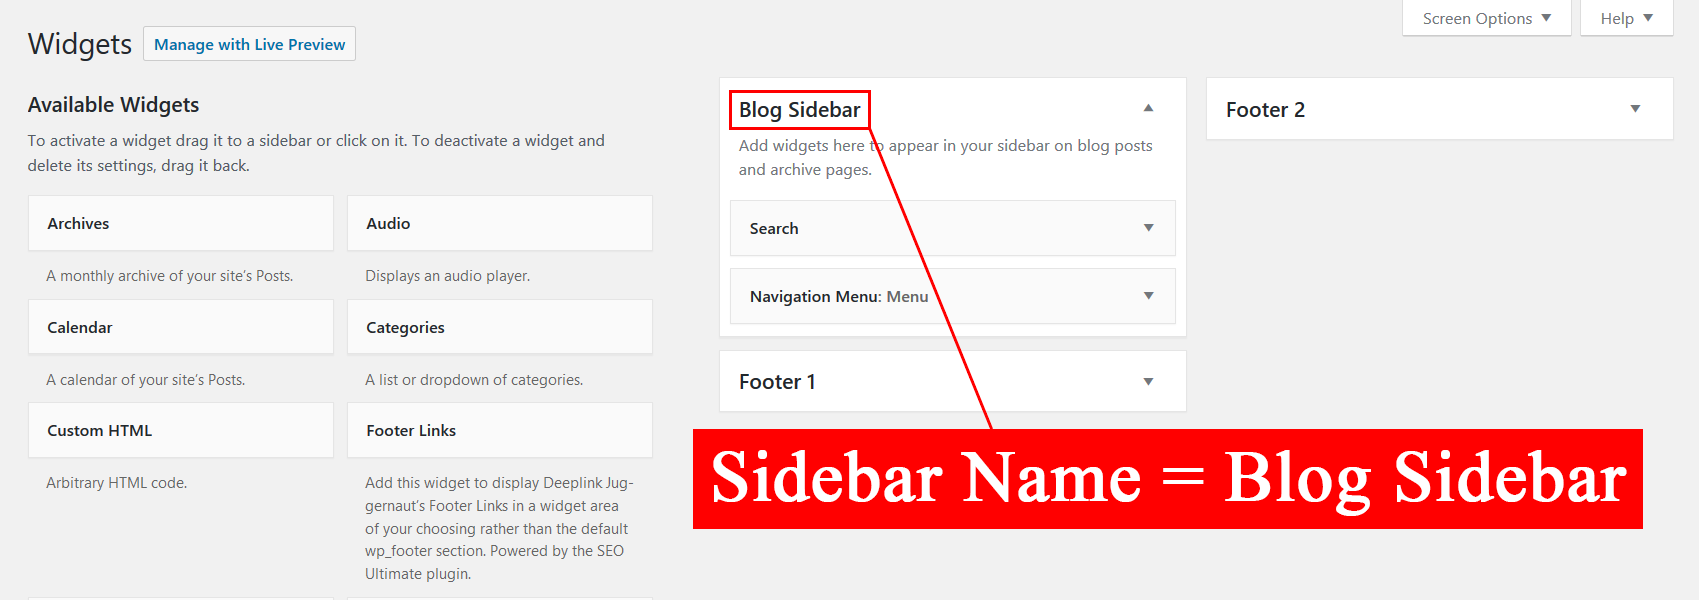 How to find a sidebar Name.